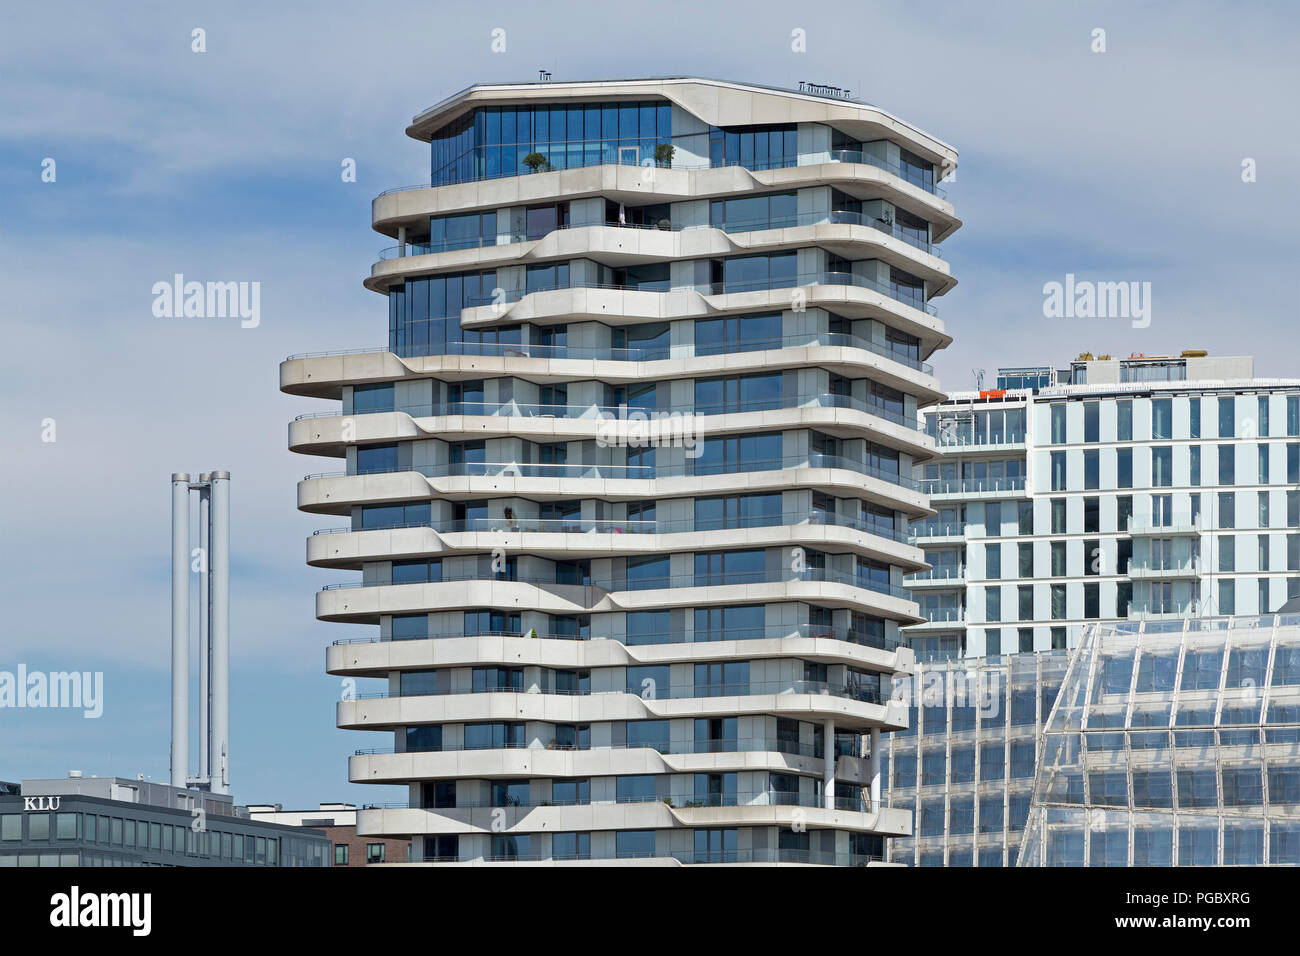 Marco Polo Tower Marco Polo Tower, Hafencity (harbour City), Hamburg, Germany Stock Photo - Alamy